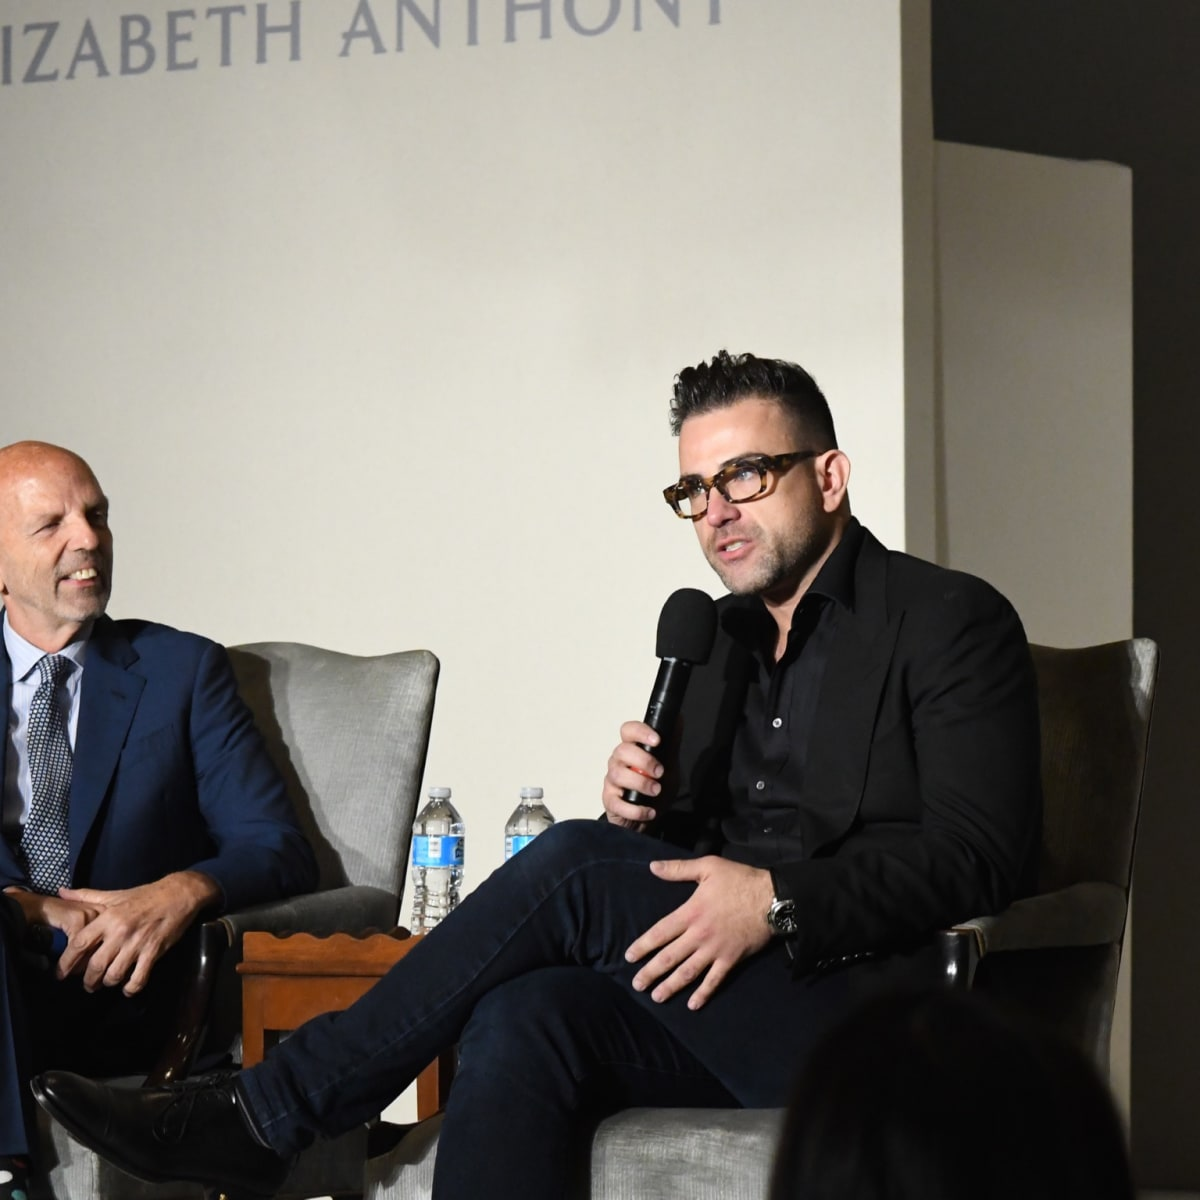 CultureMap Editor-in-Chief Clifford Pugh interviews Rubin Singer on his background, recent achievements and designing for Beyonce at Passion for Fashion Luncheon